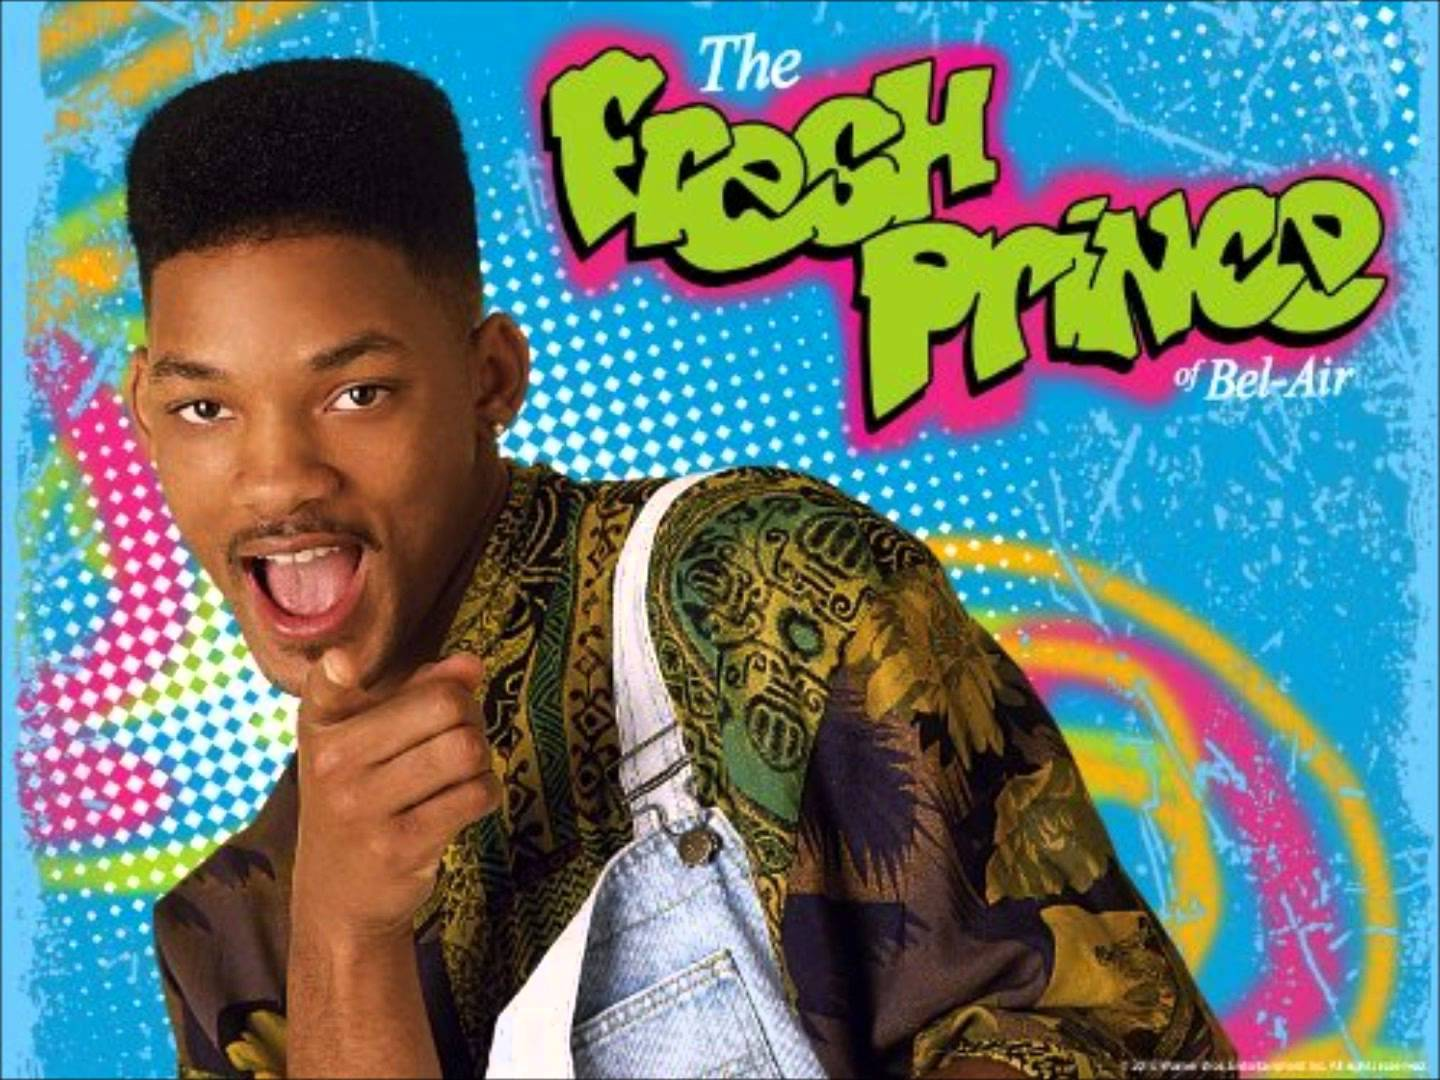 Geekstra_fresh_prince_of_bel_air